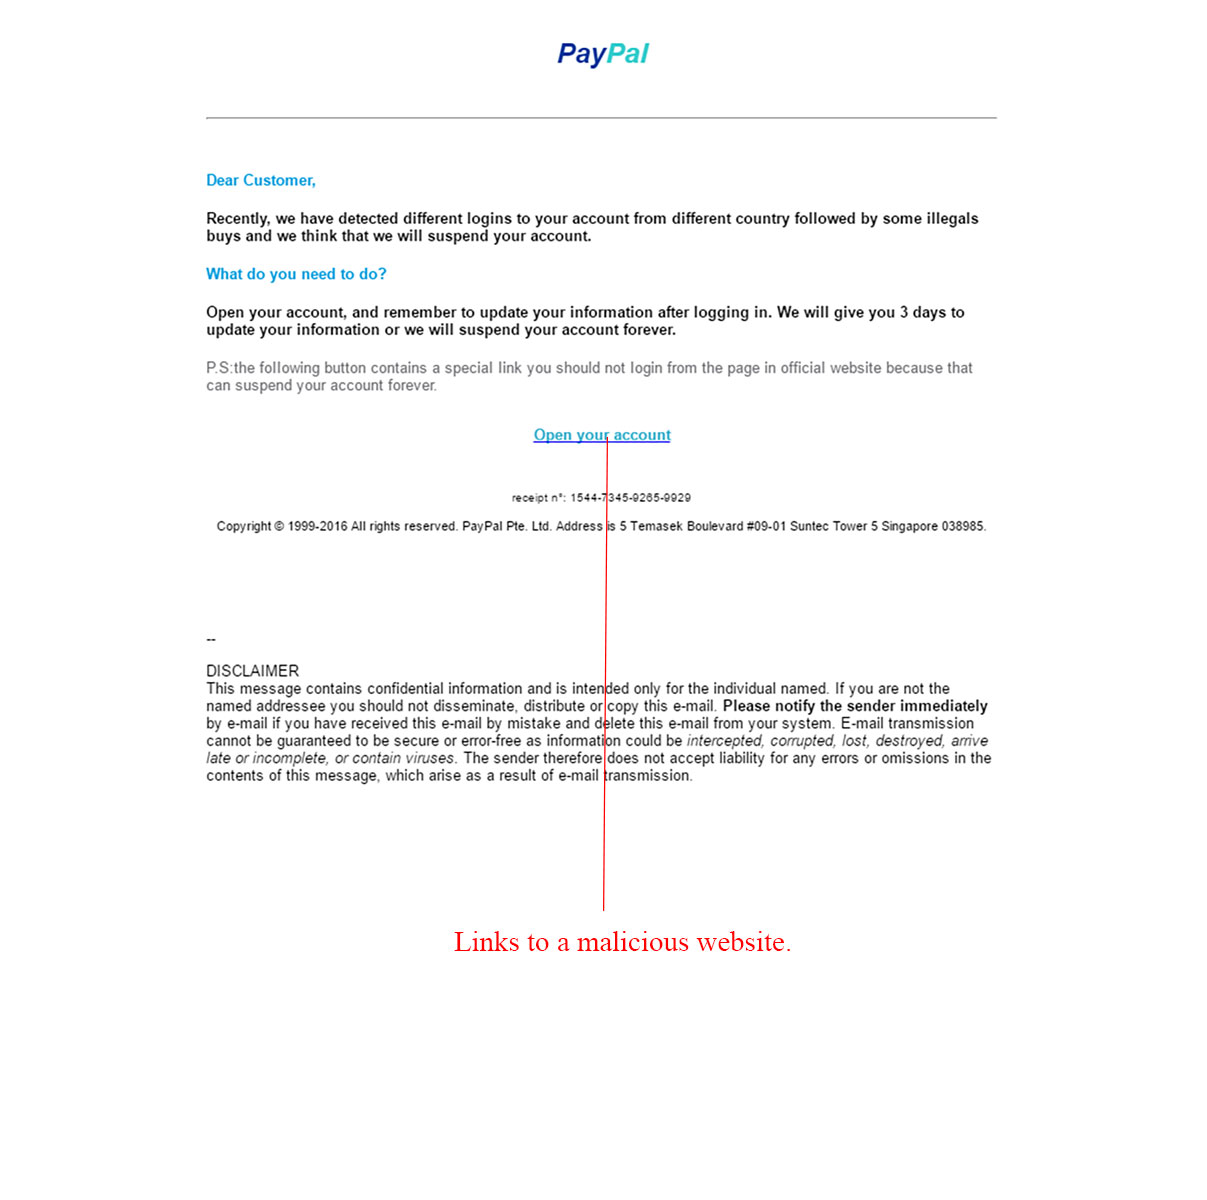 Paypal Account Update Email Scam